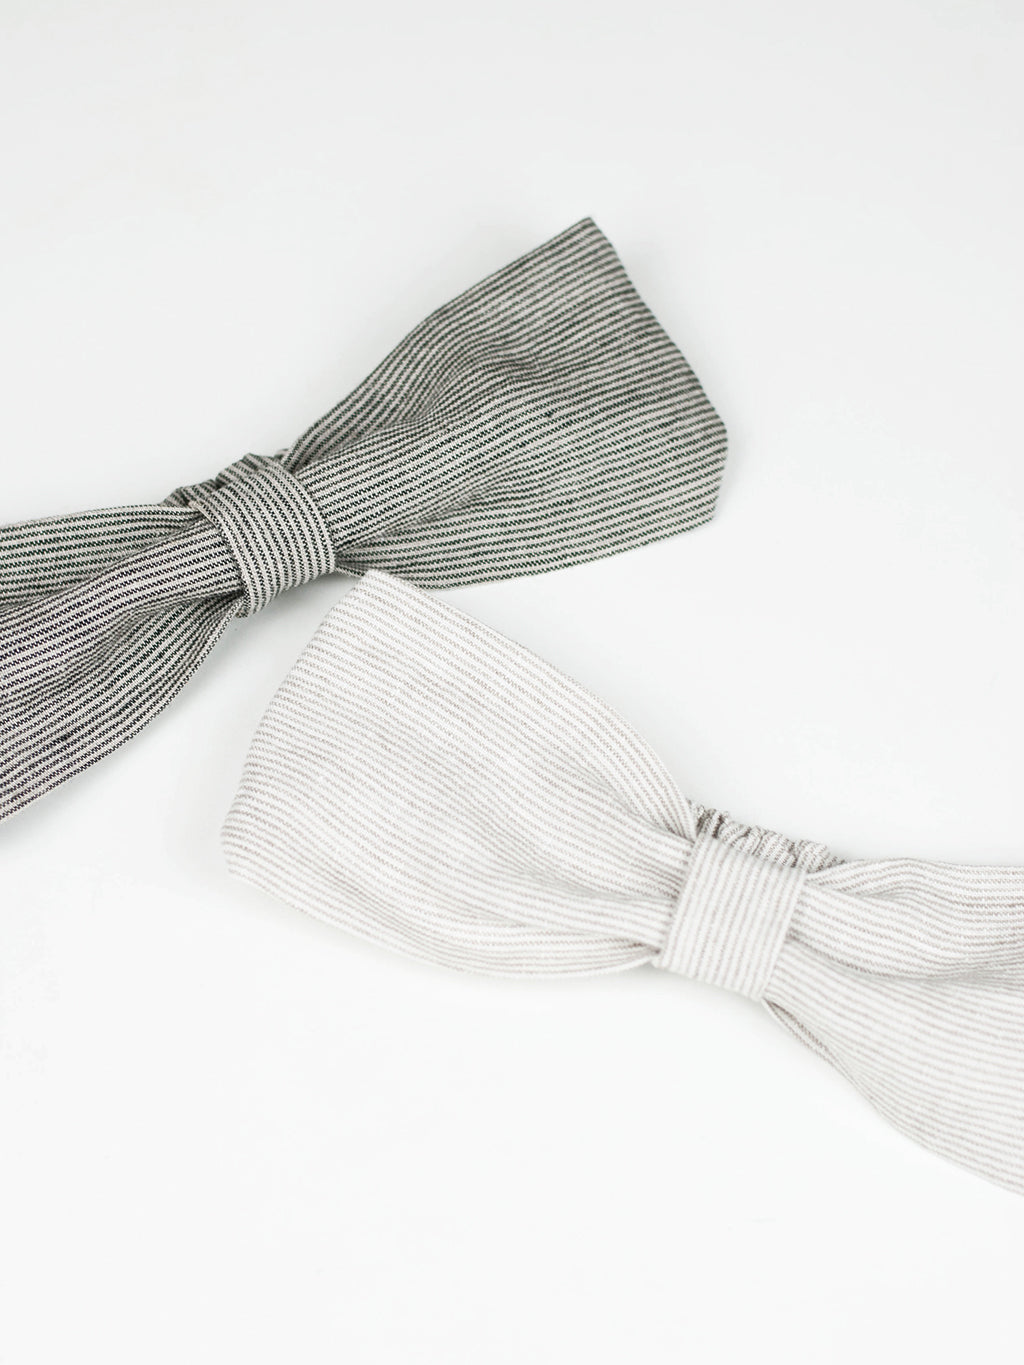 Headband made from our offcut fabrics. Because we love to recycle!